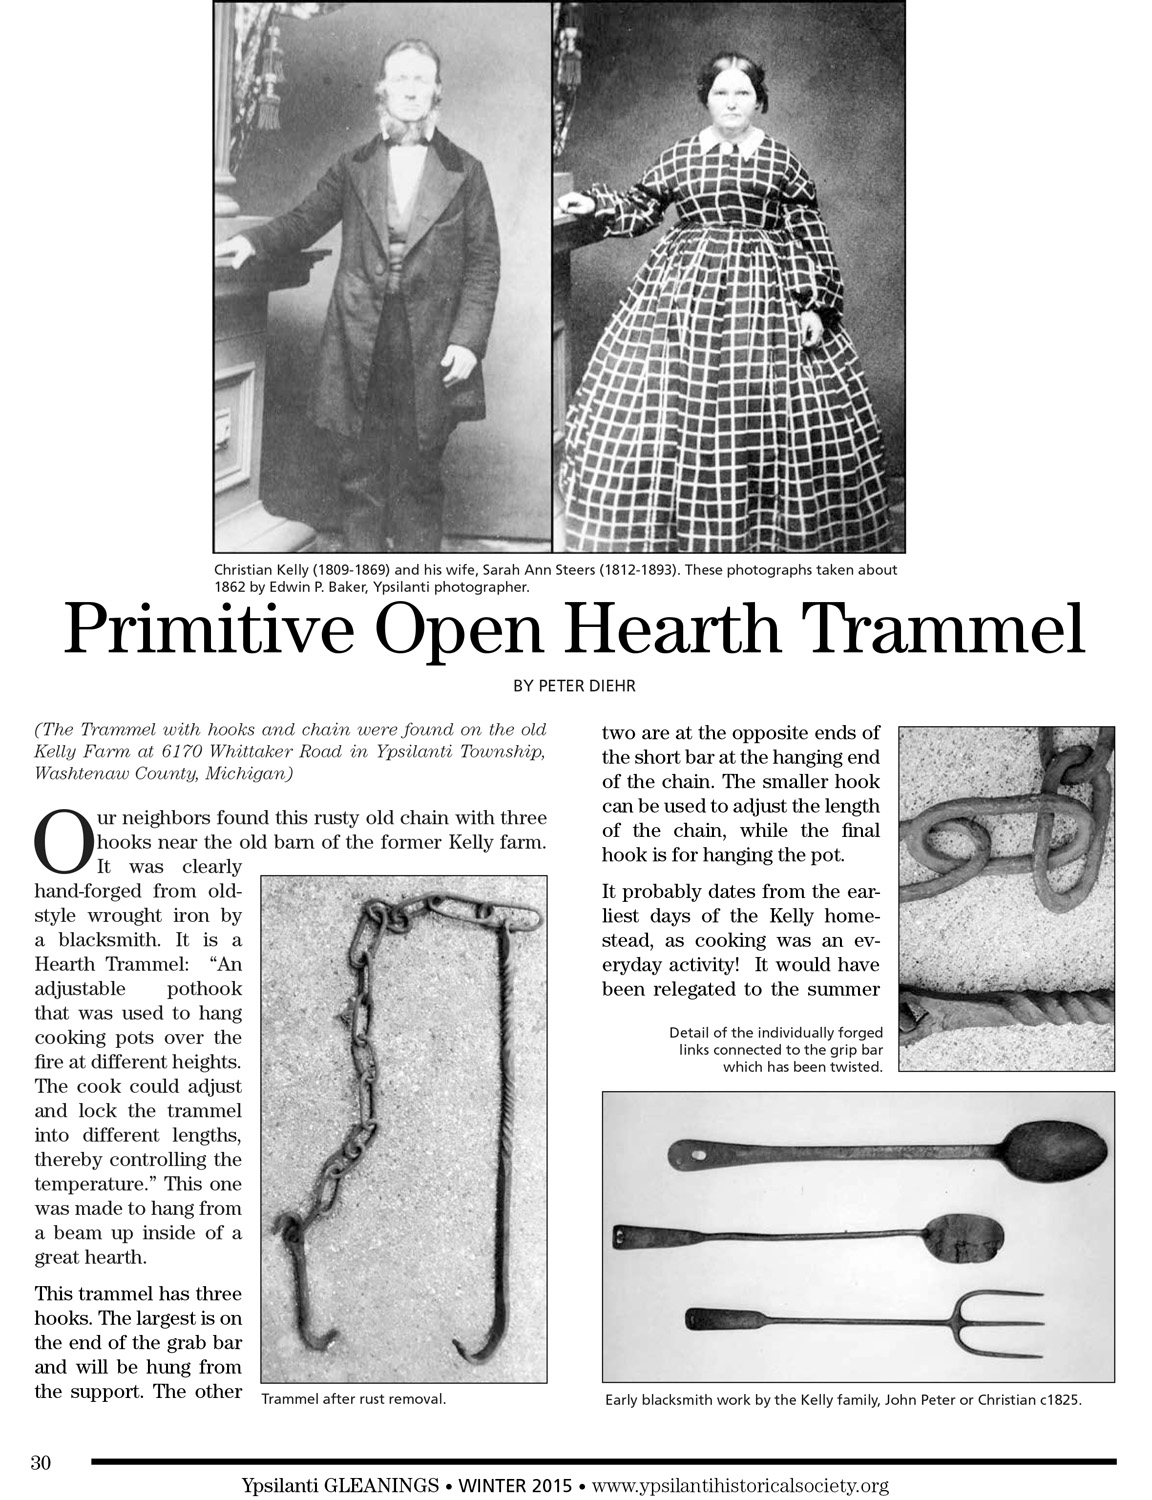 Primitive Open Hearth Trammel image